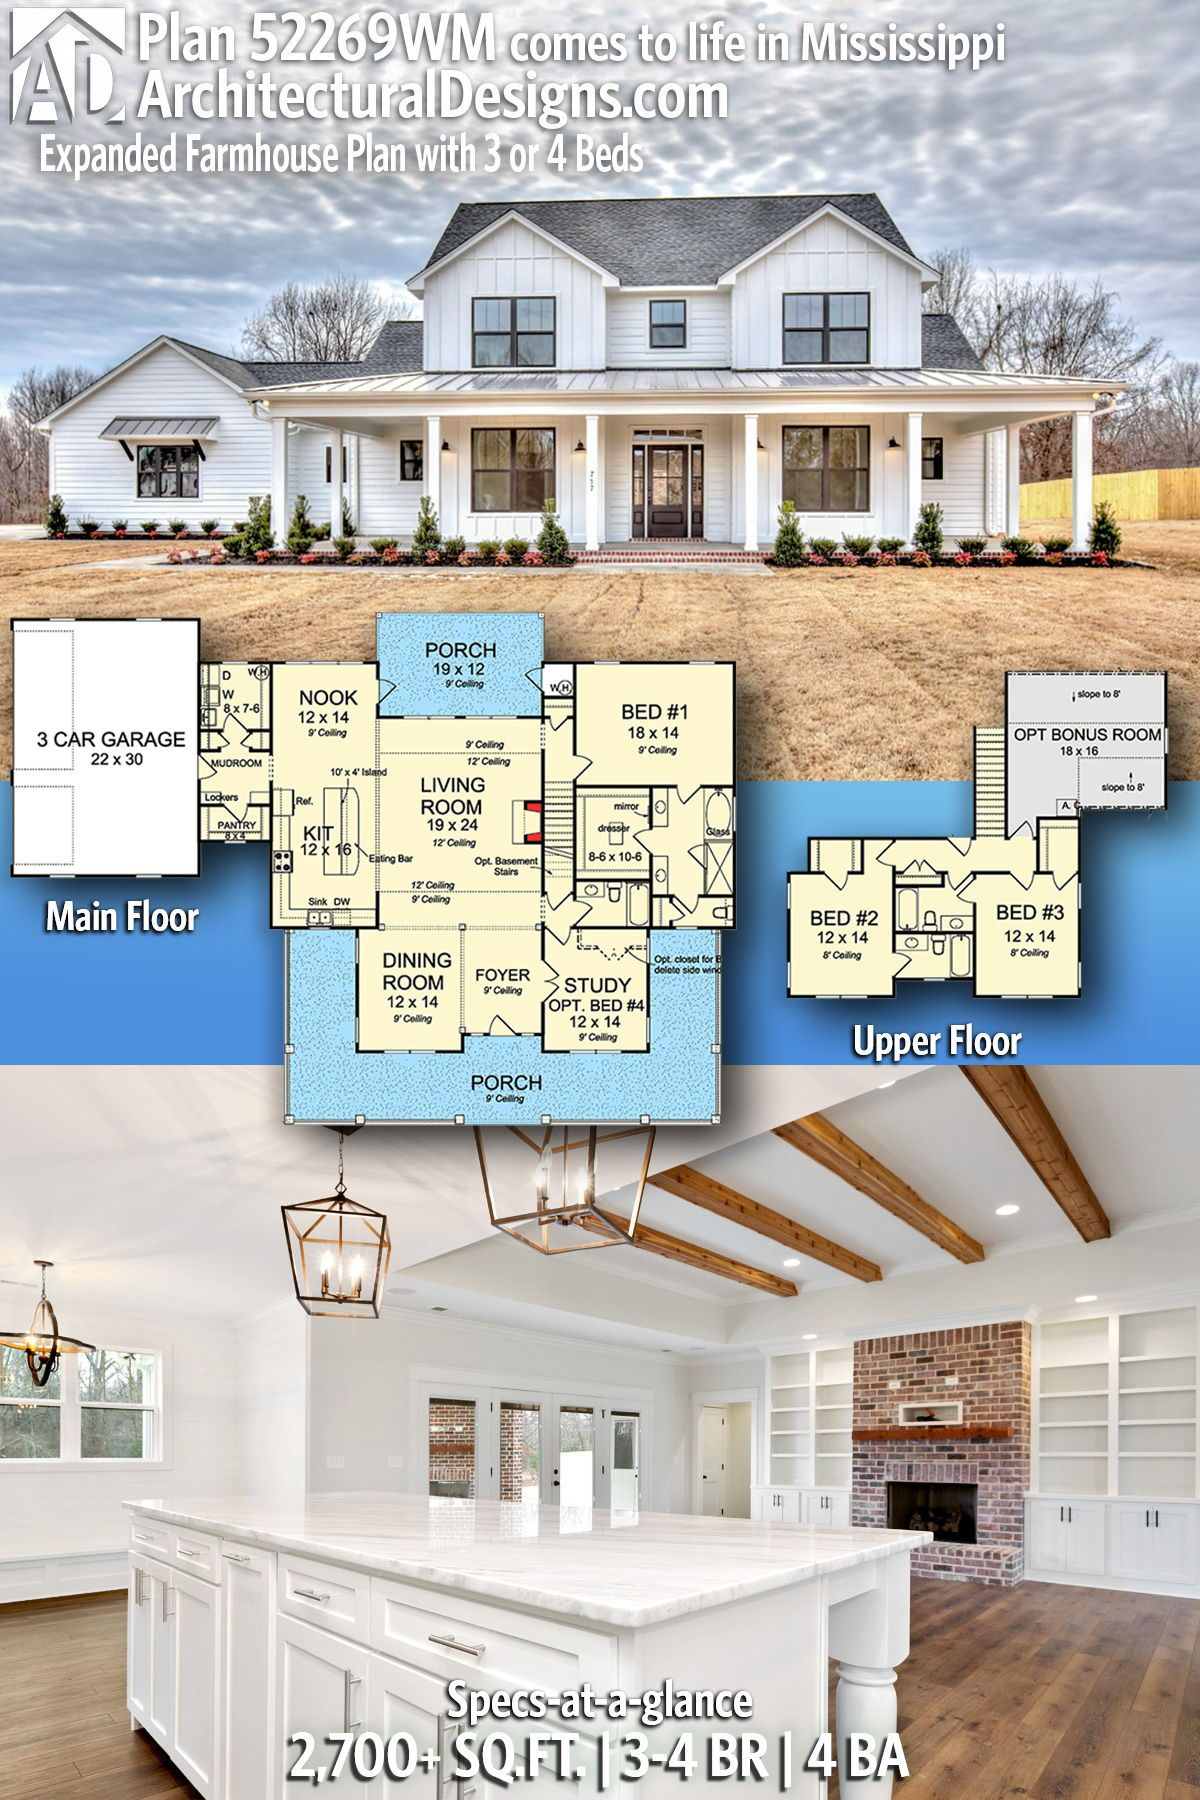 Architectural designs farmhouse plan wm client built in mississippi bedrooms baths square feet ready when you are also house plans archdesigns on pinterest rh